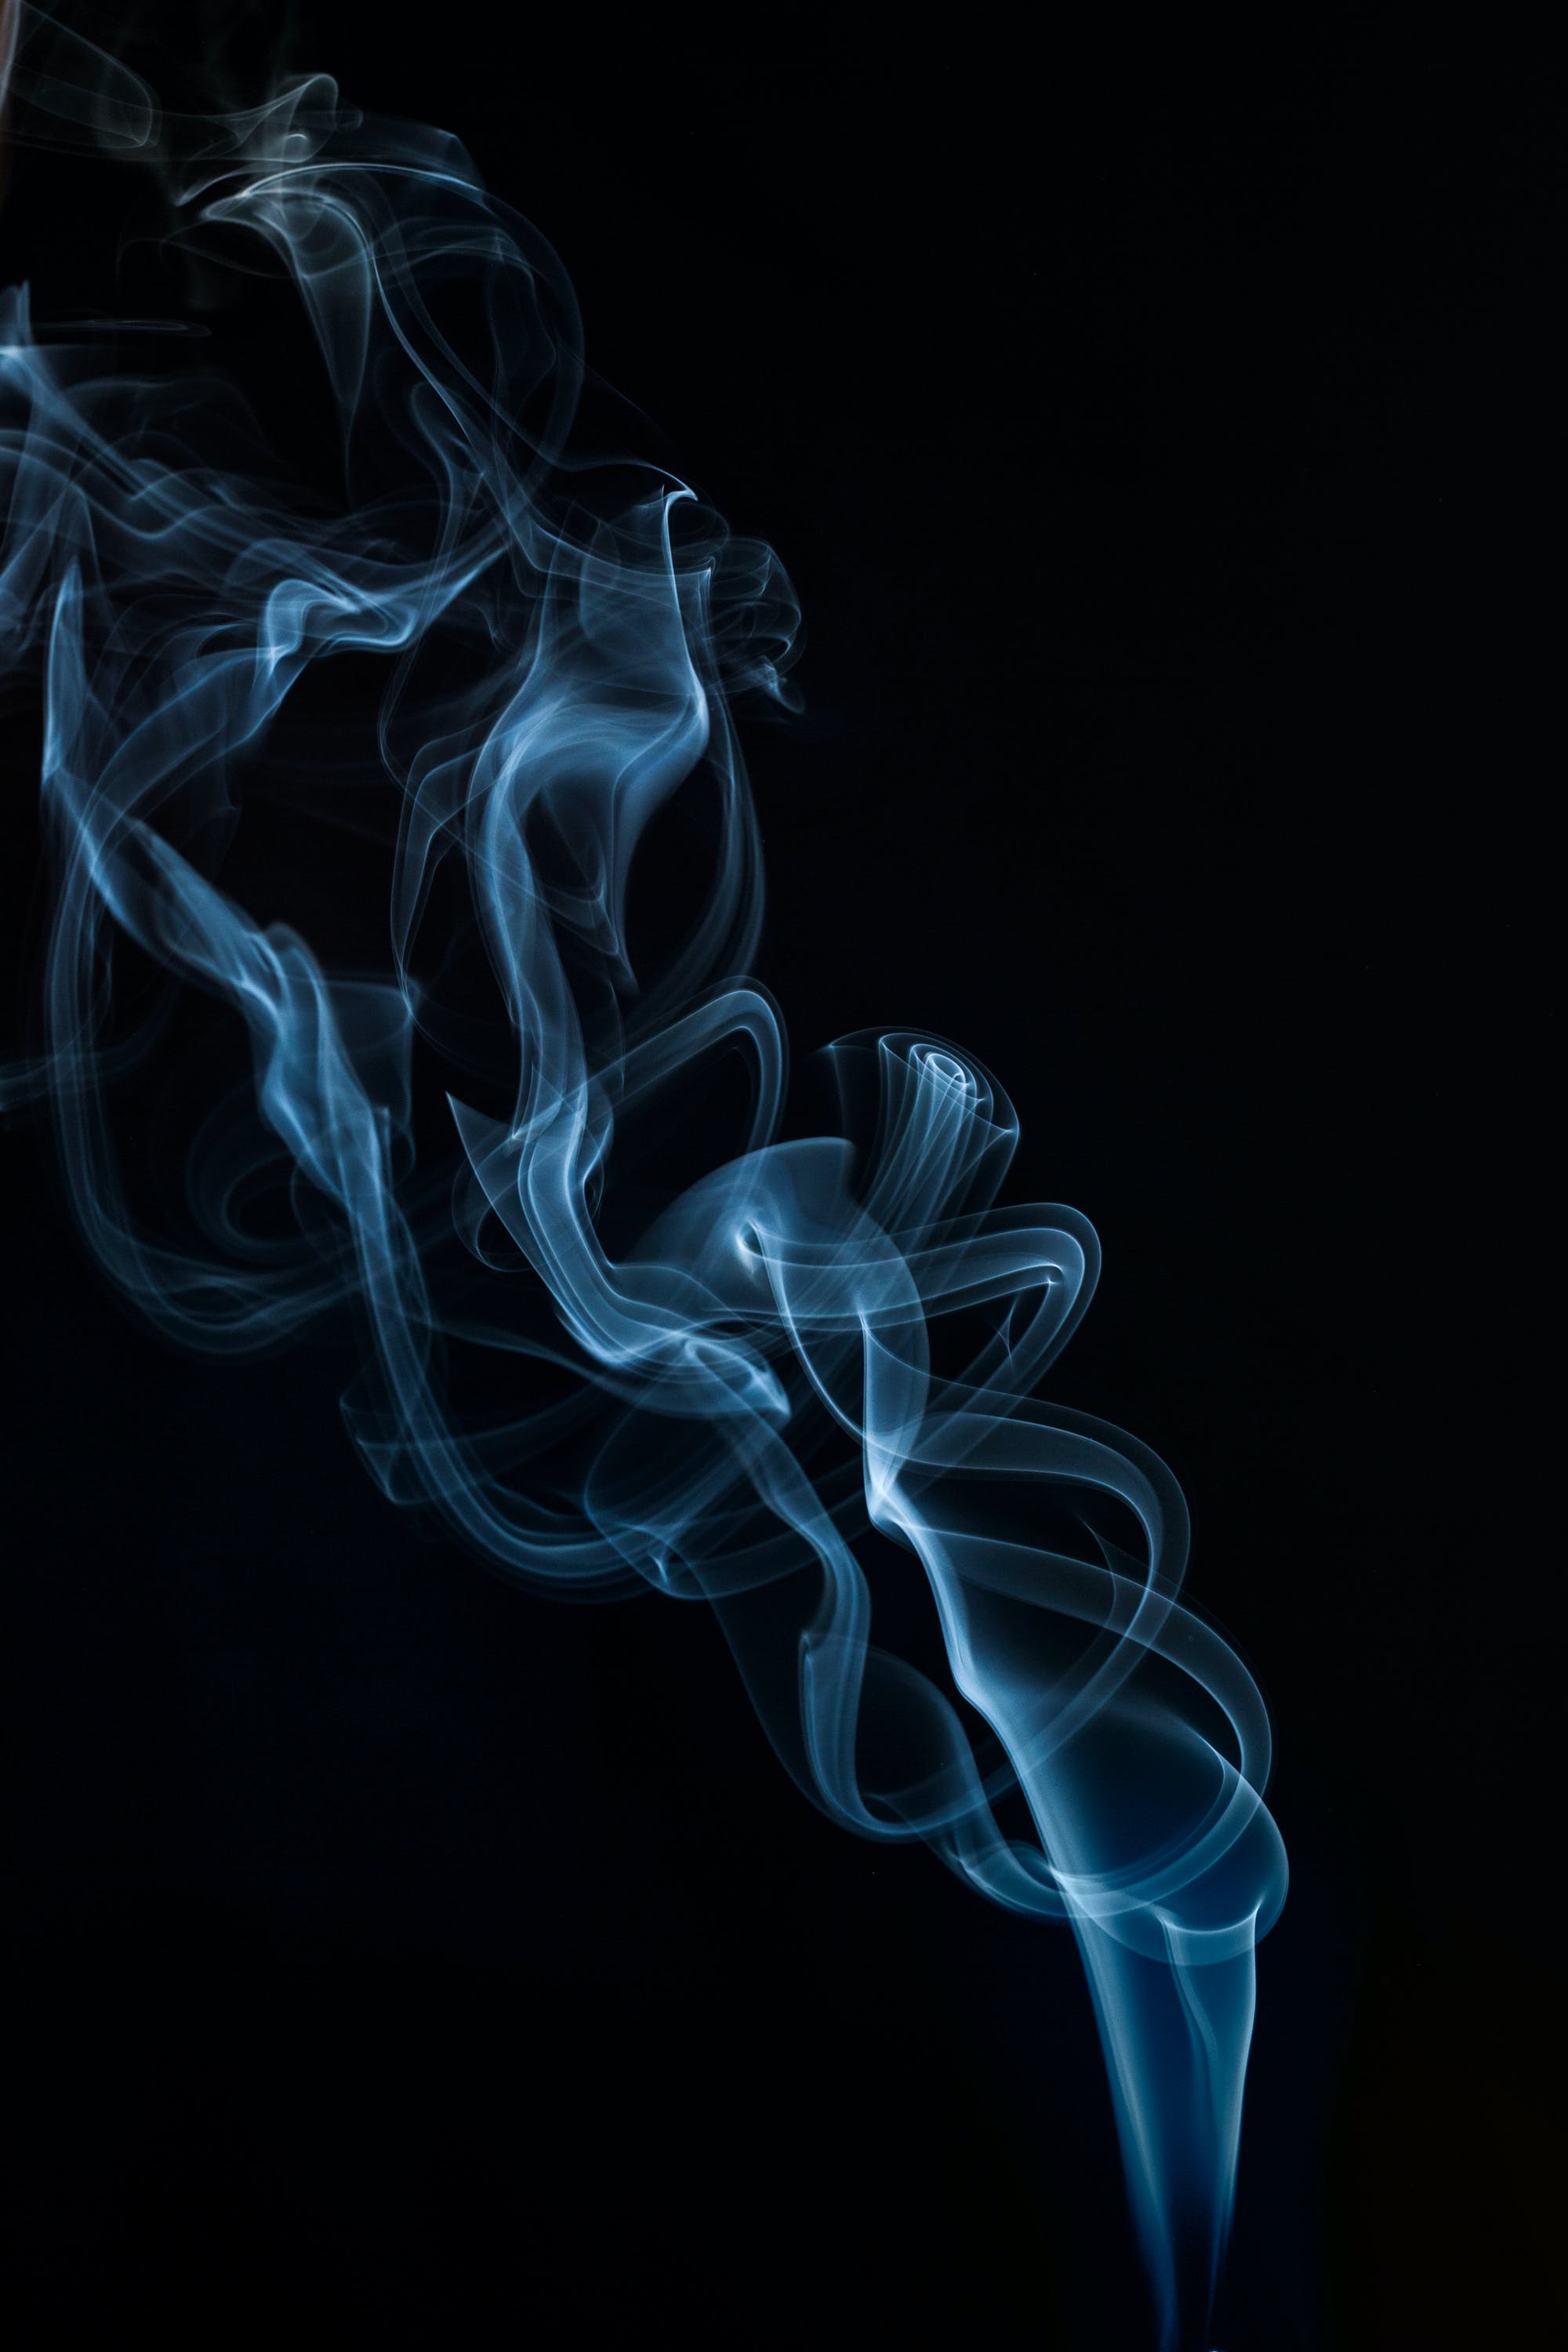 500 Great Smoke Photos Pexels Free Stock Photos